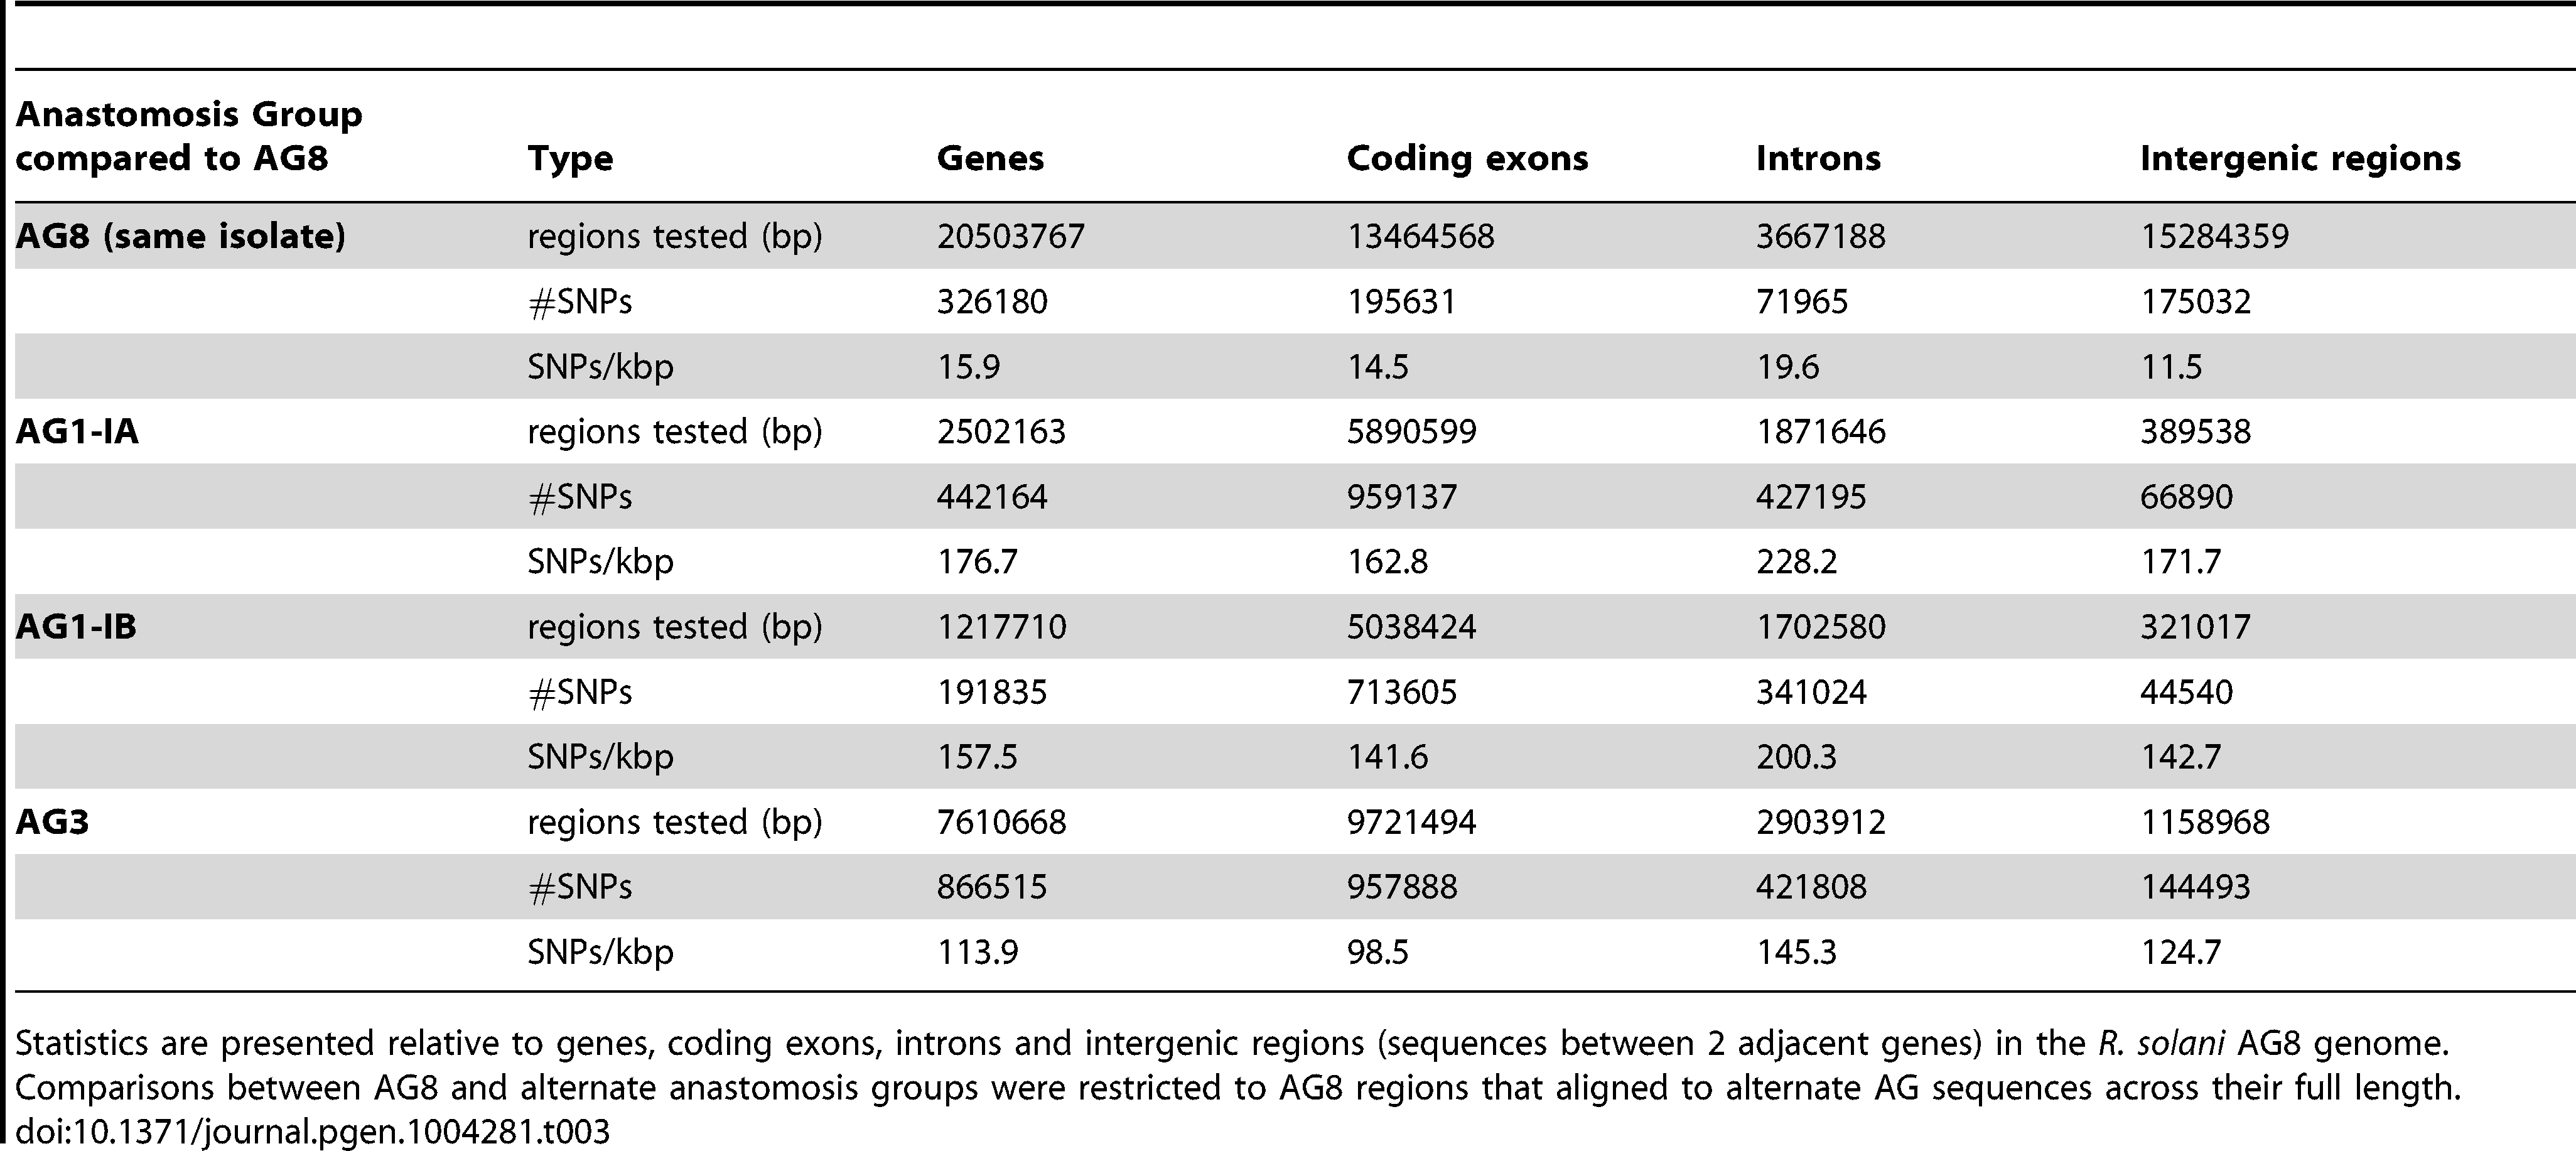 The frequency and relative densities of heterozygous SNPs within the <i>R. solani</i> AG8 genome assembly and SNPs between the genomes of AG8 and isolates from other anastomosis groups.